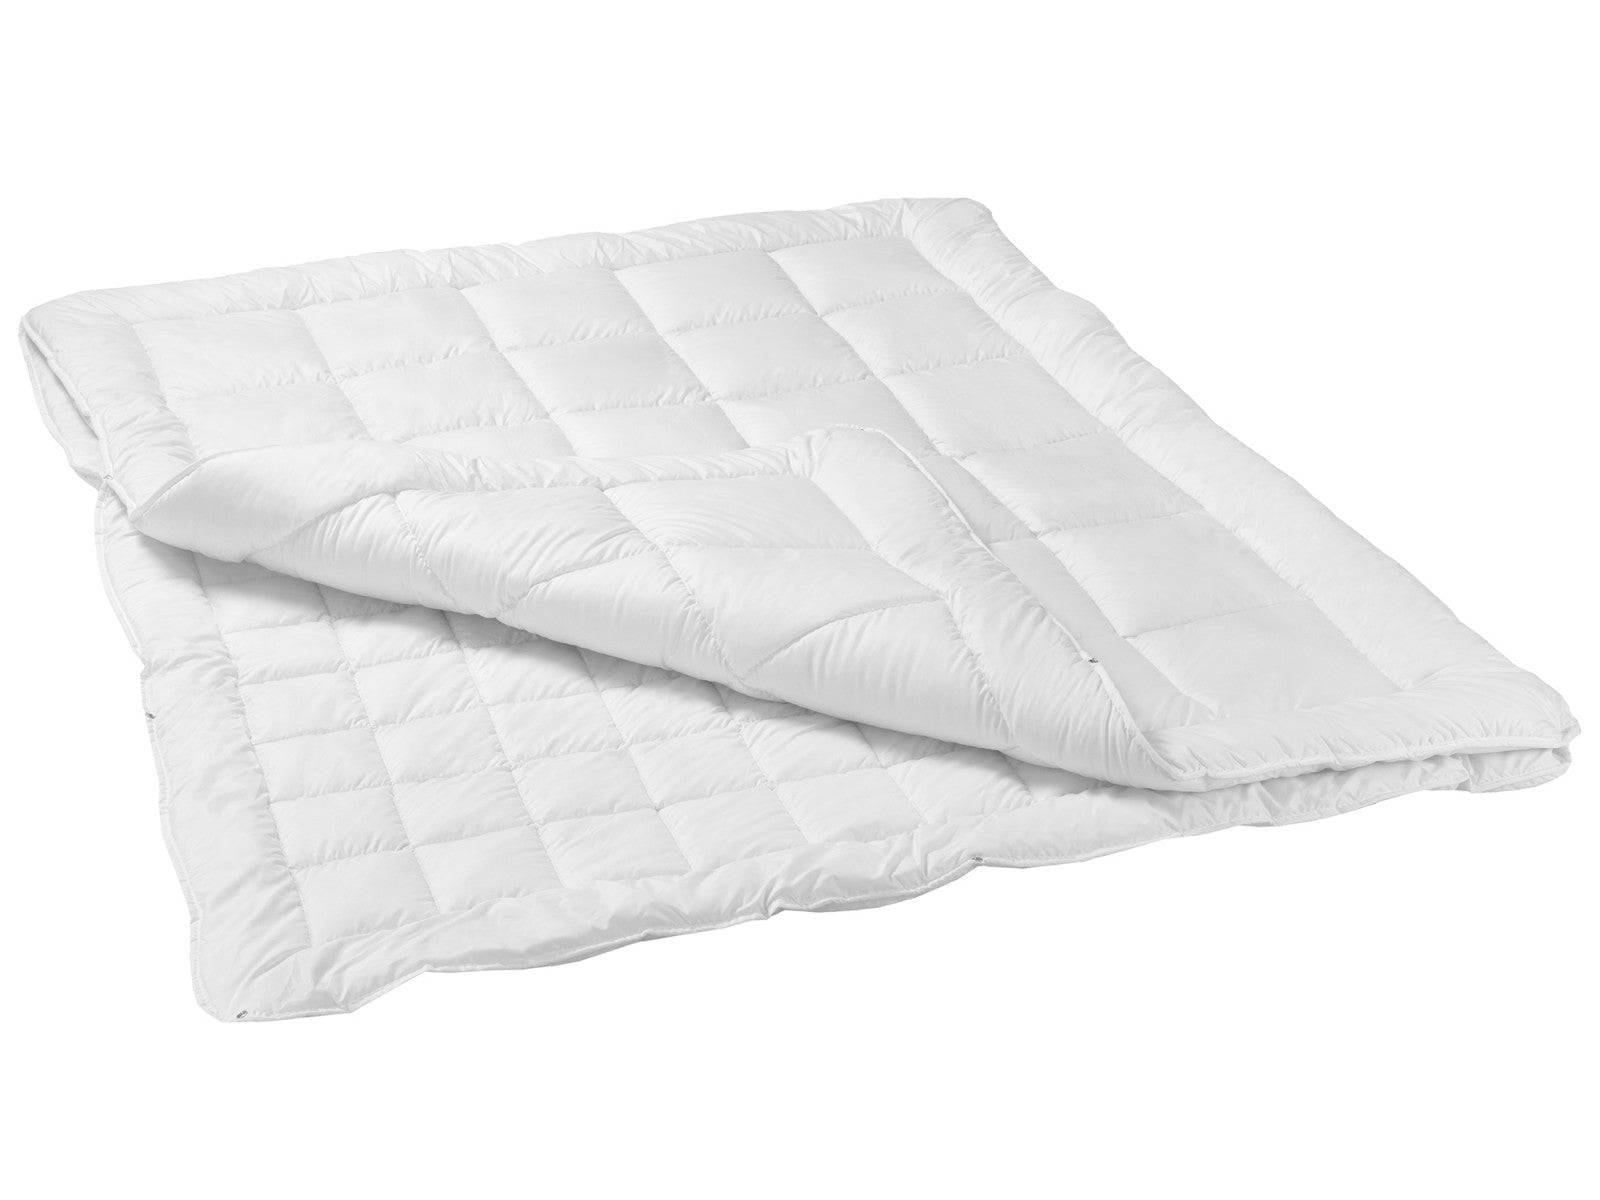 SomProduct Couette Dreamfill Polyester Blanc